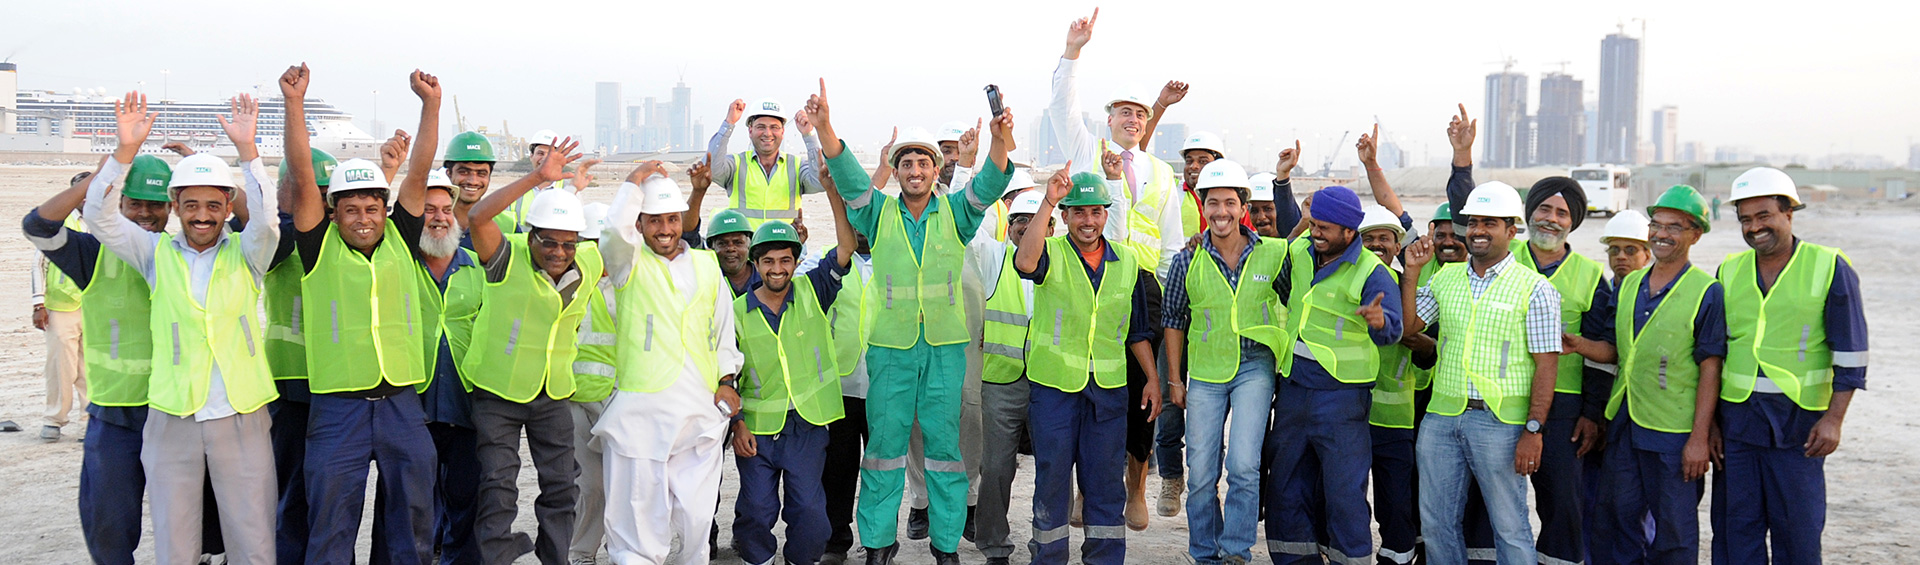 MACE Contractors – Quality and Excellence since 1968 | Careers